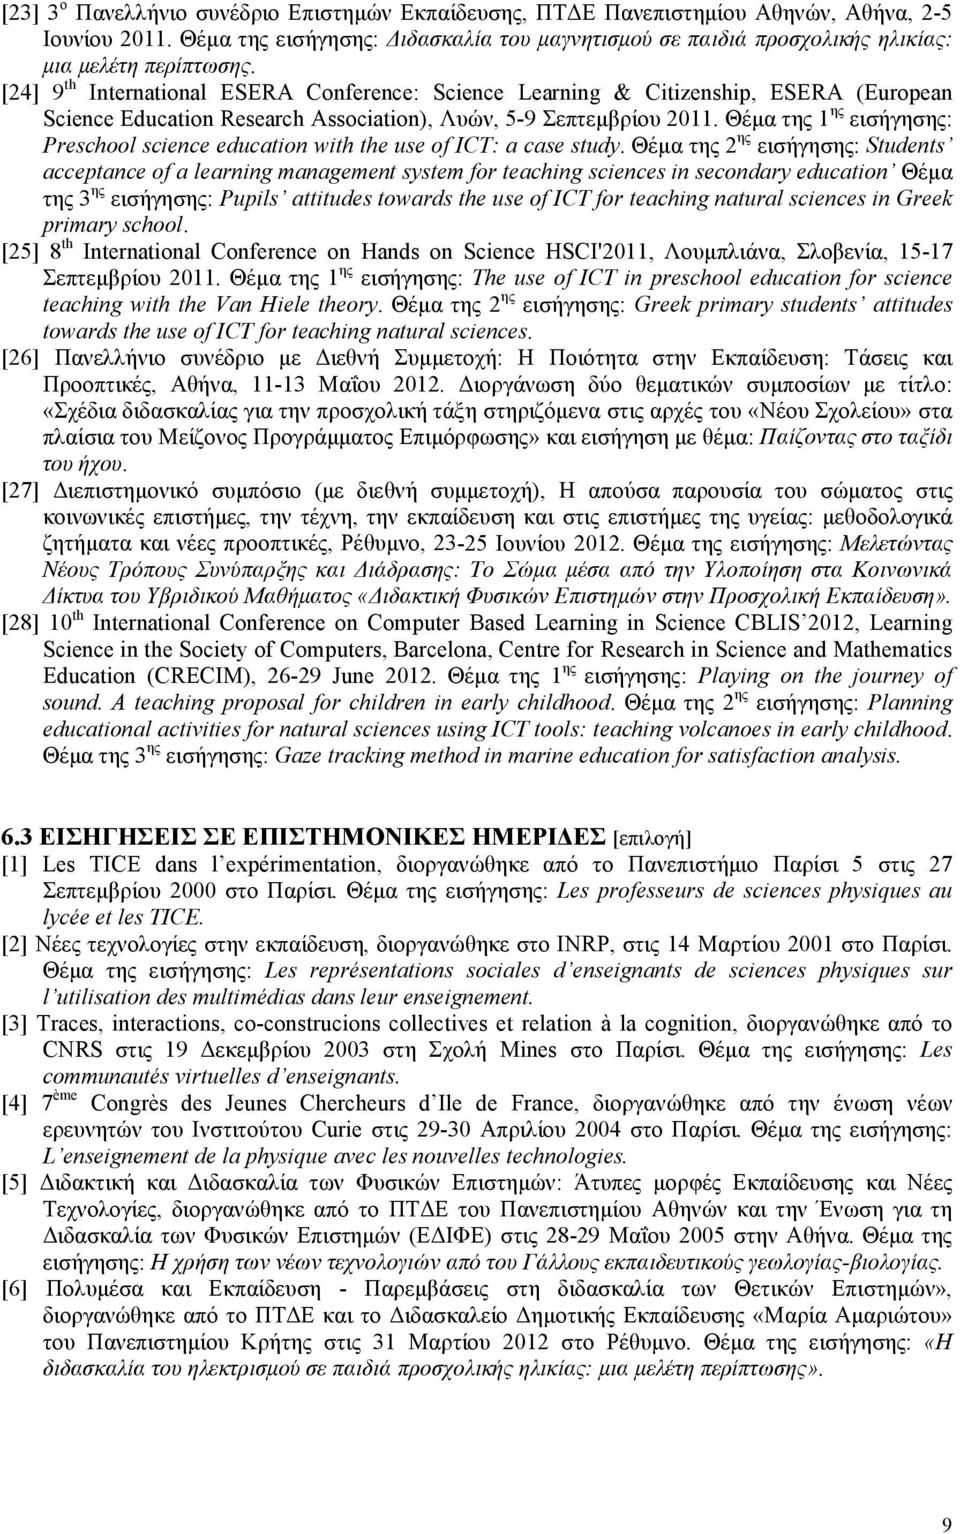 [24] 9 th International ESERA Conference: Science Learning & Citizenship, ESERA (European Science Education Research Association), Λυών, 5-9 Σεπτεμβρίου 2011.